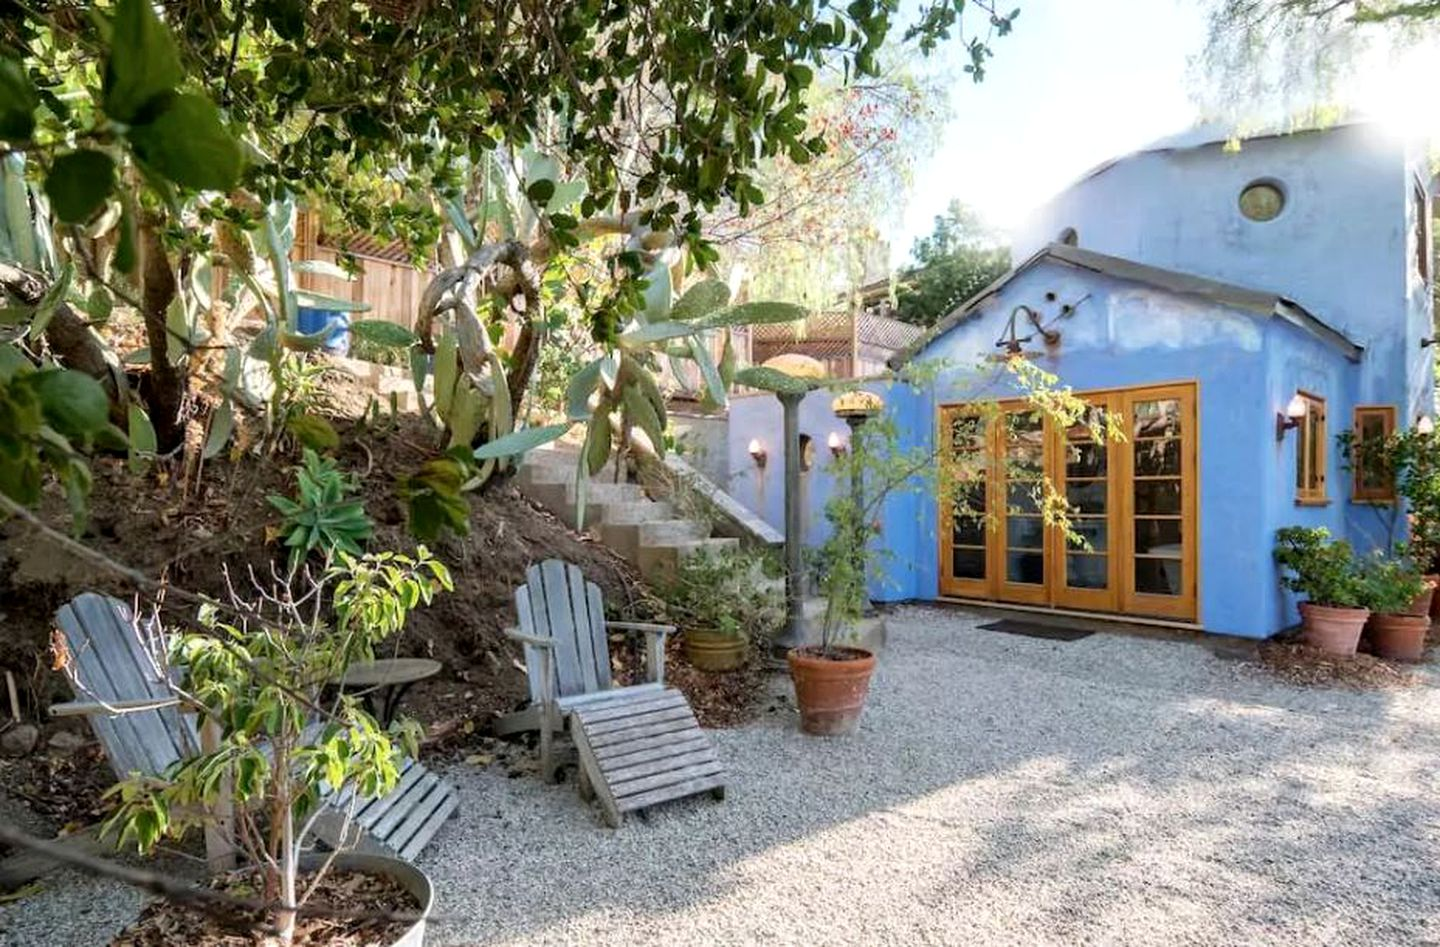 Back of private blue cottage with nice wooden back doors, back garden equipped with deck chairs and large plants.